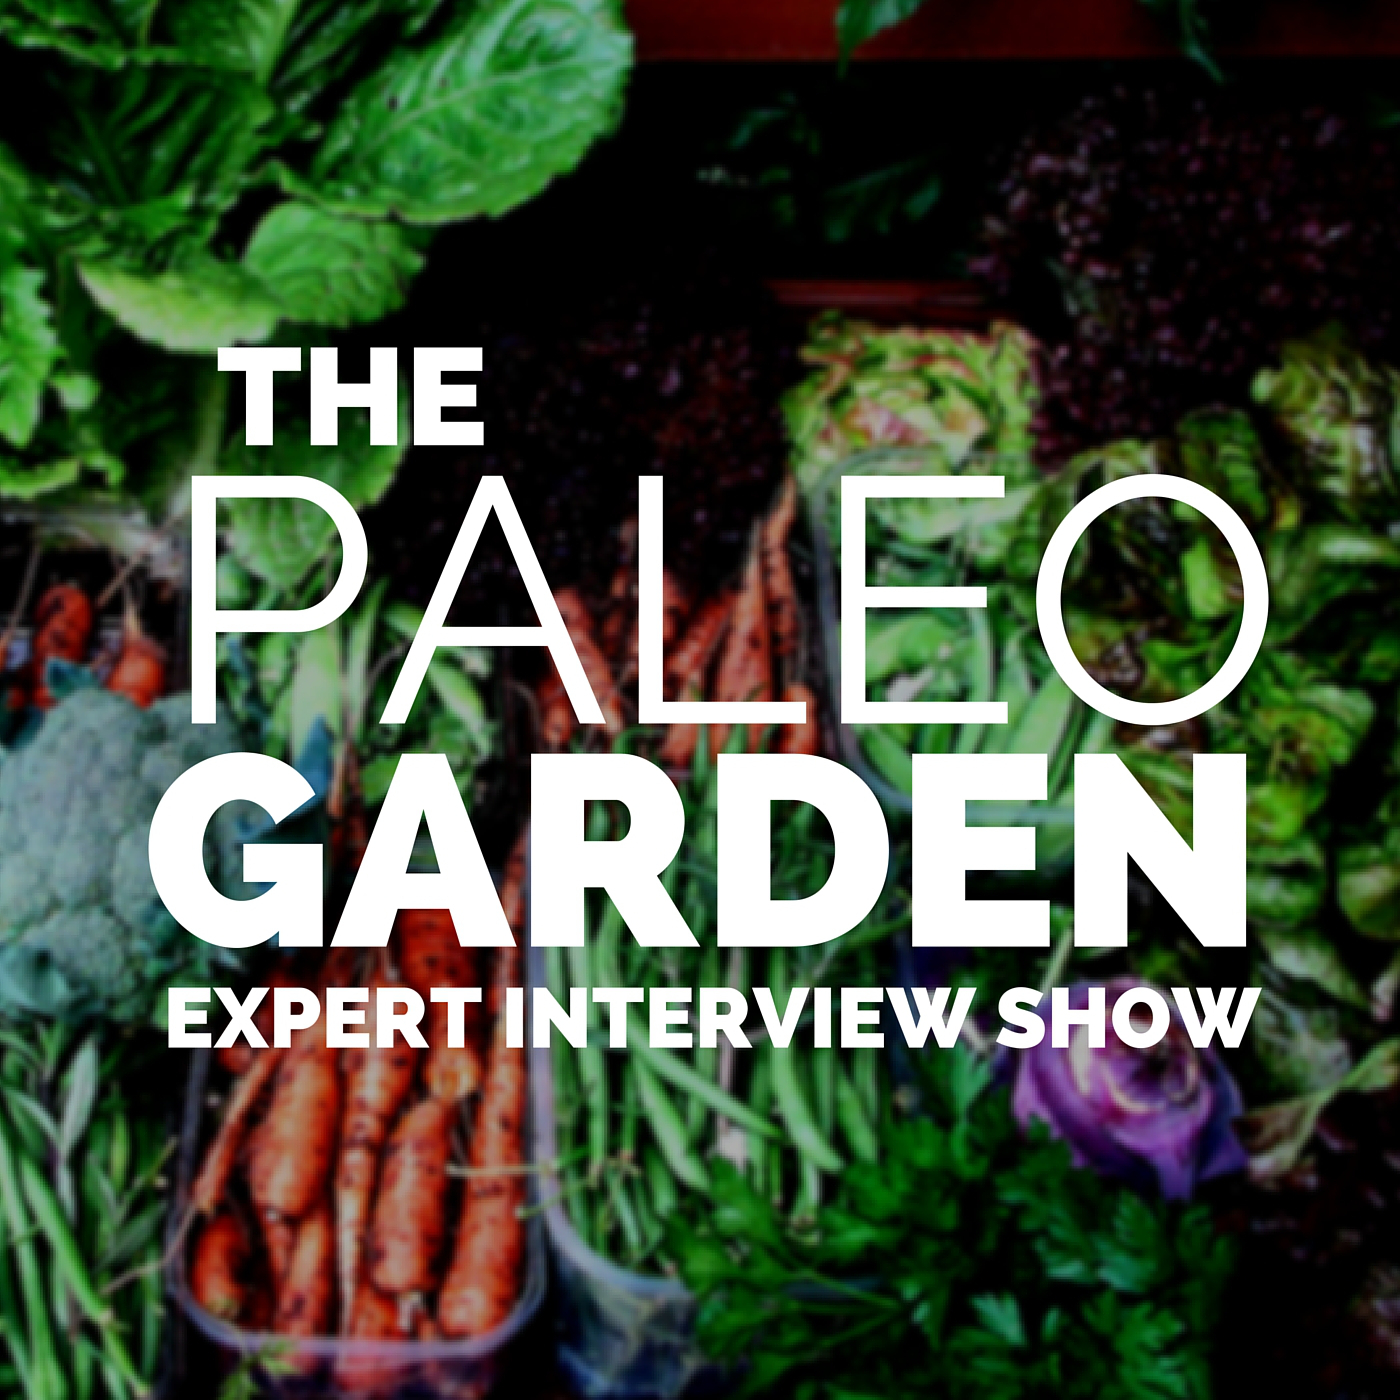 The Paleo Garden Expert Interview Show